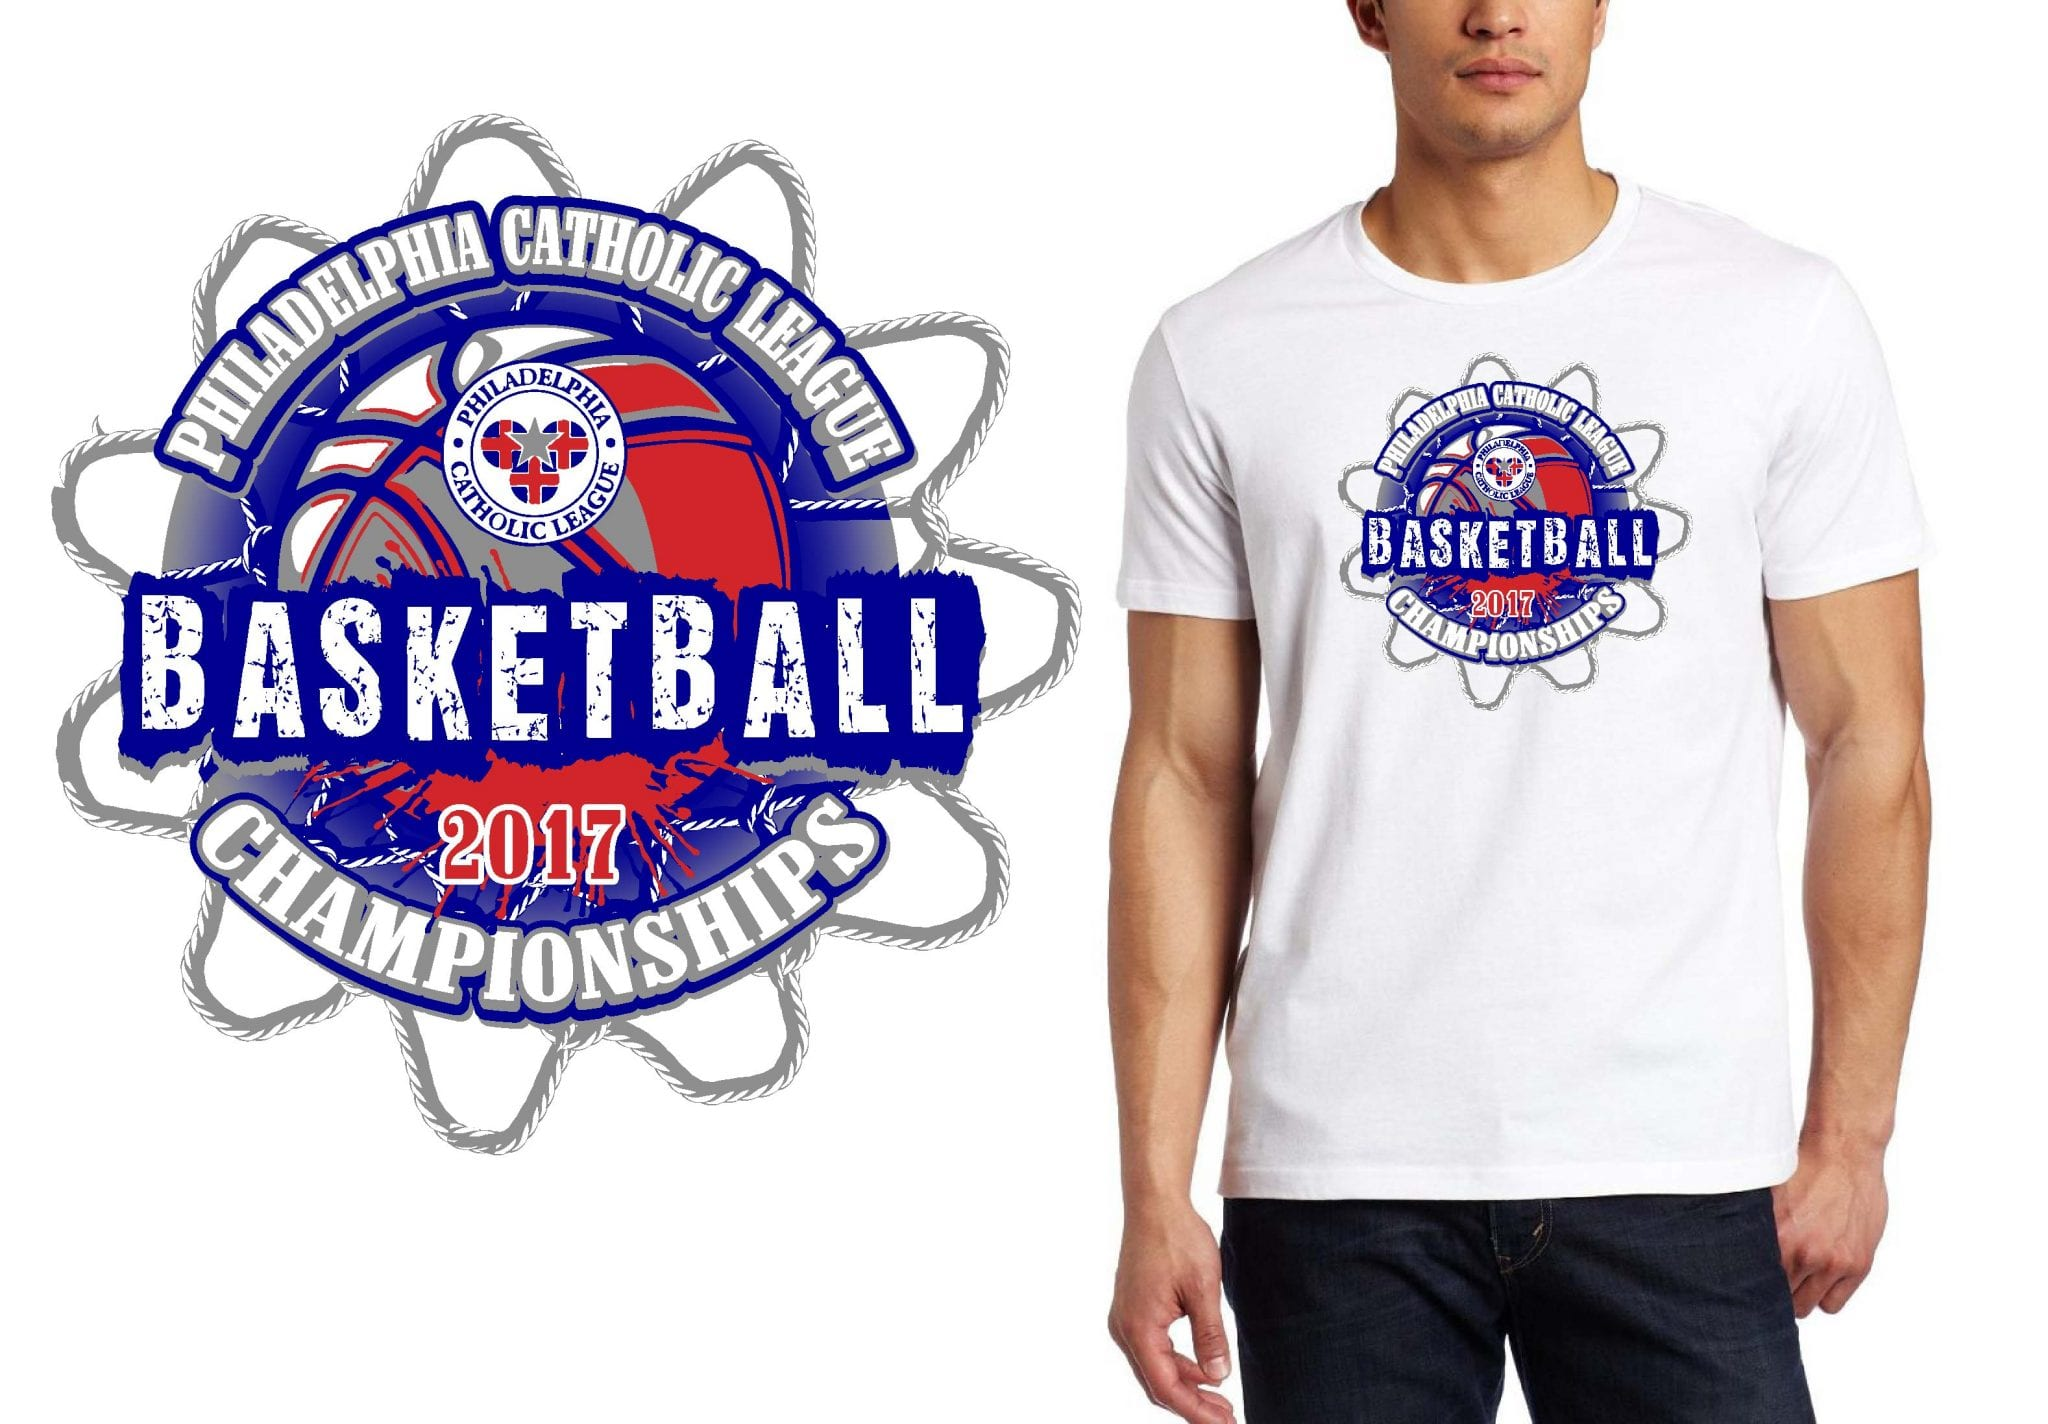 BASKETBALL TSHIRT LOGO DESIGN Philadelphia-Catholic UrArtStudio